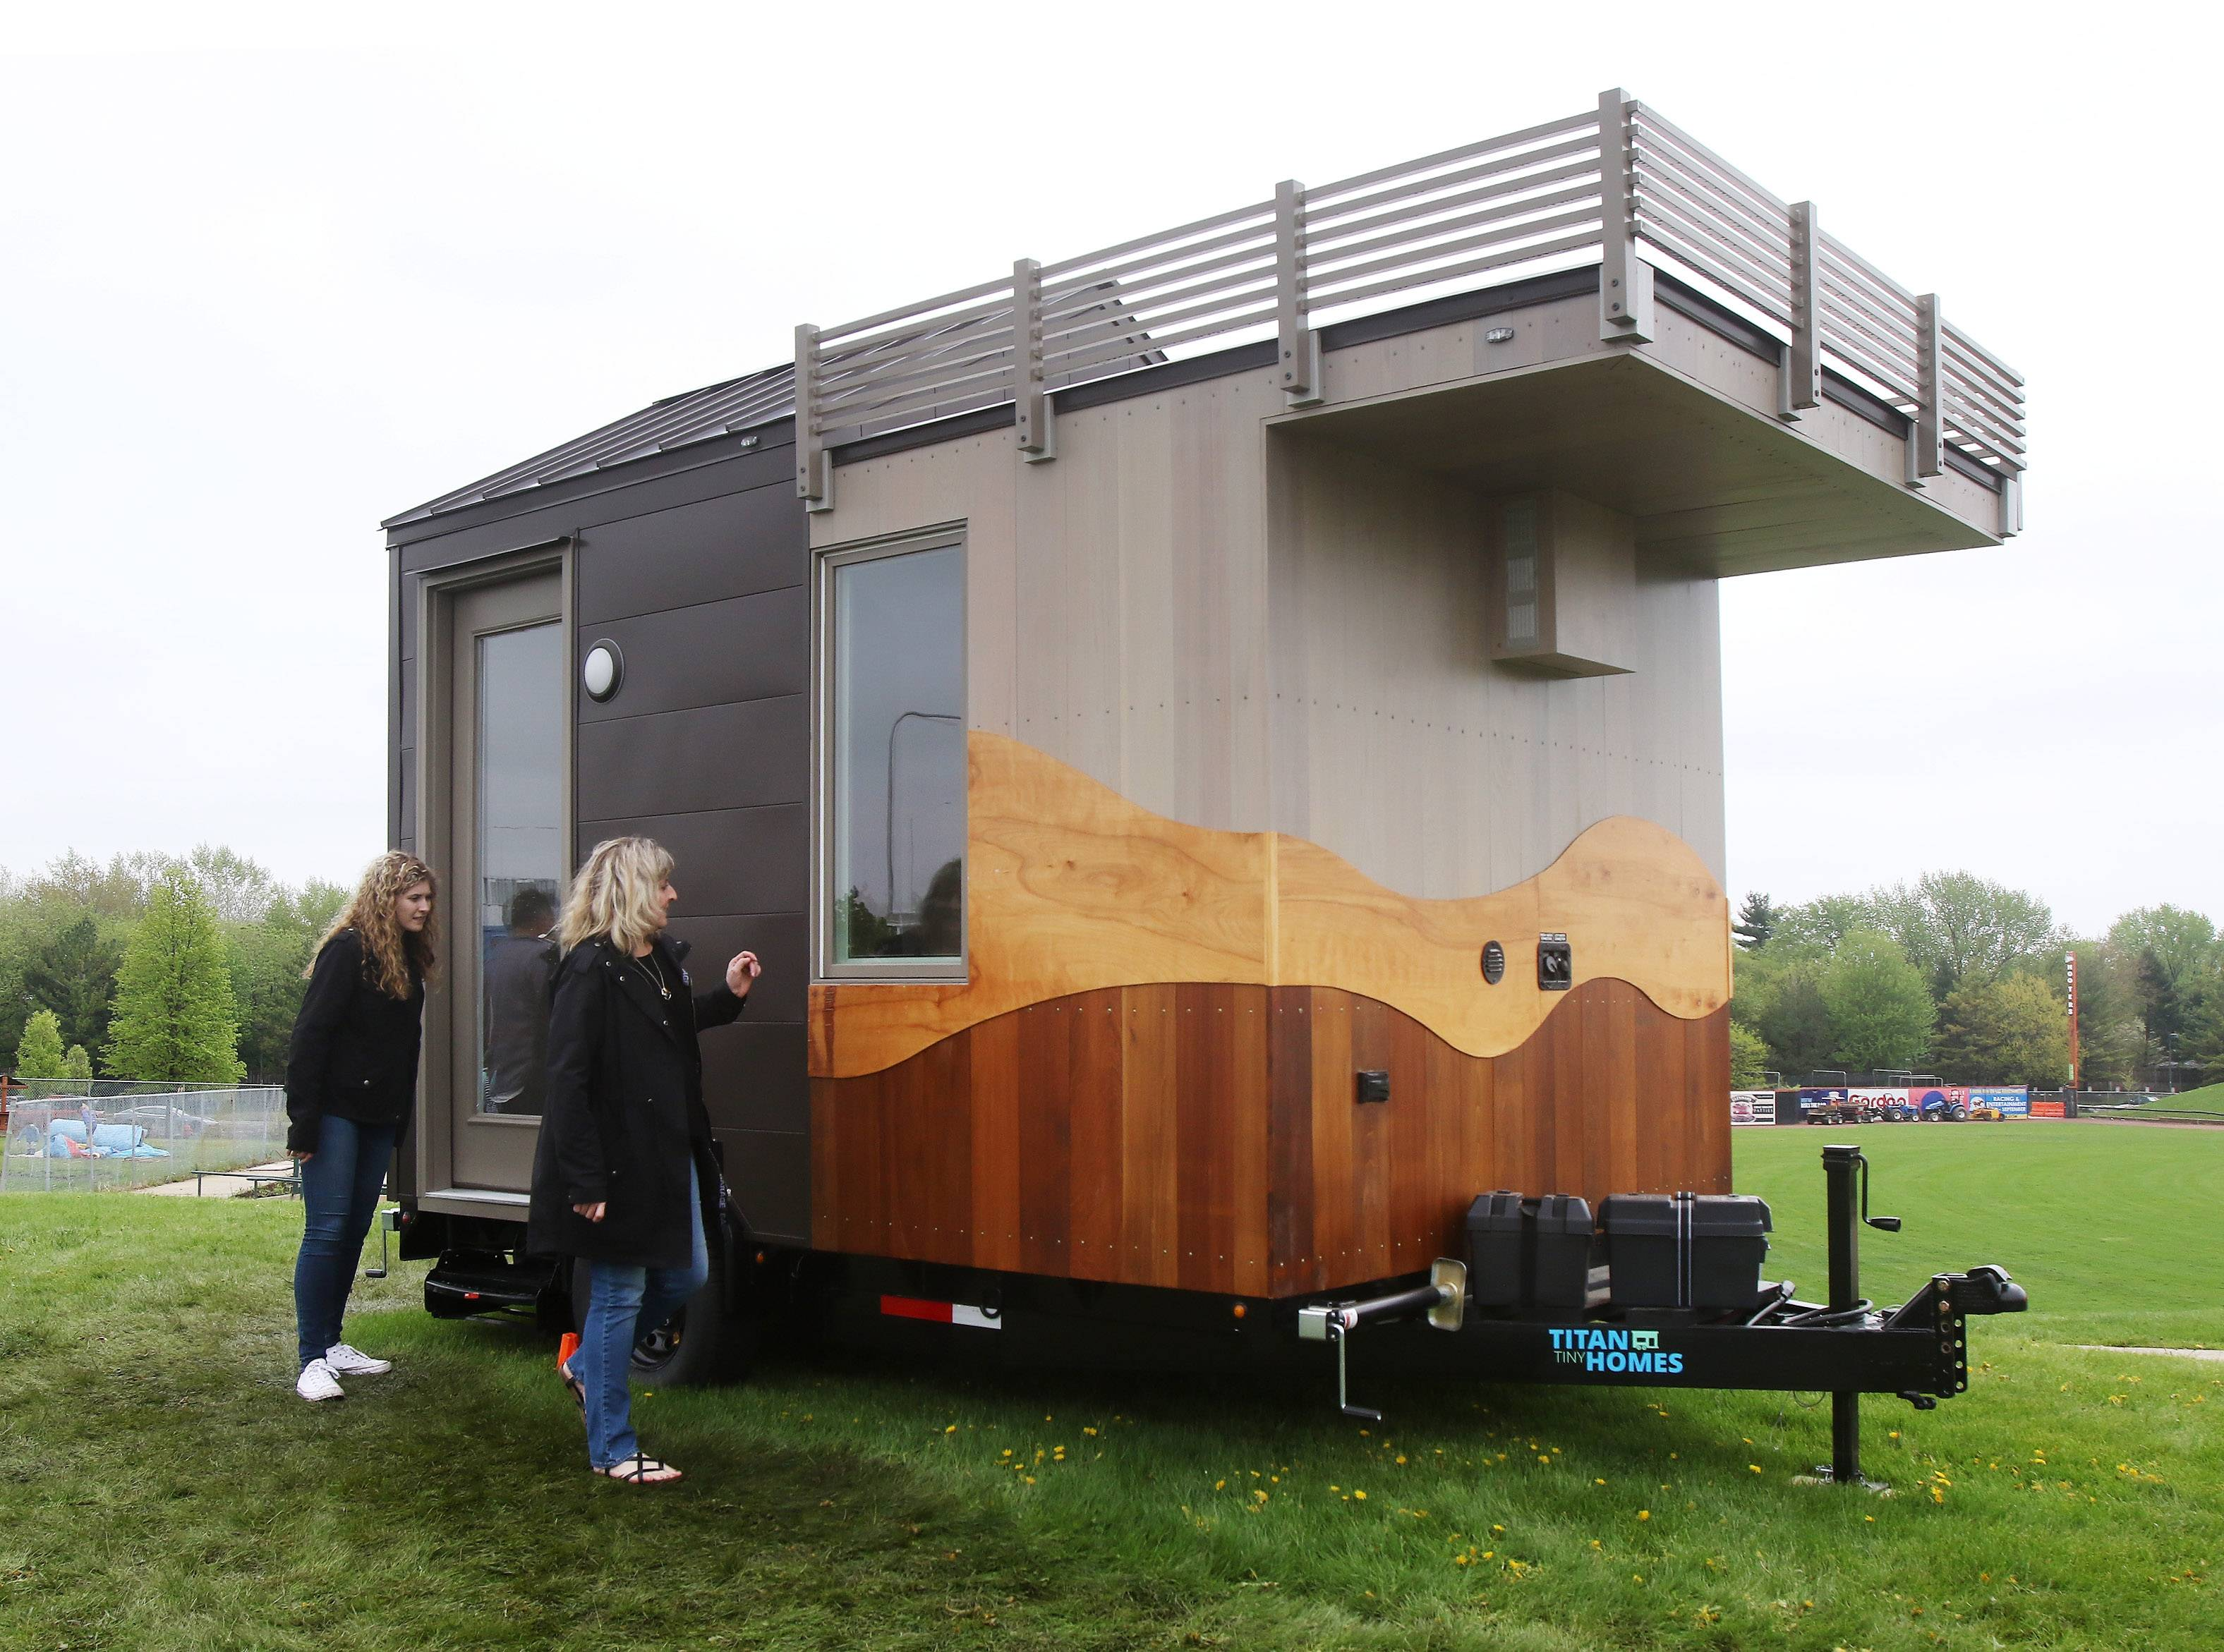 Susan Bolt of Gilberts, right, and her daughter, Bridget, 18, look at a smaller model home by Titan Tiny Homes during the 2018 Chicago Tiny House Show on Sunday at Boomers Stadium in Schaumburg.